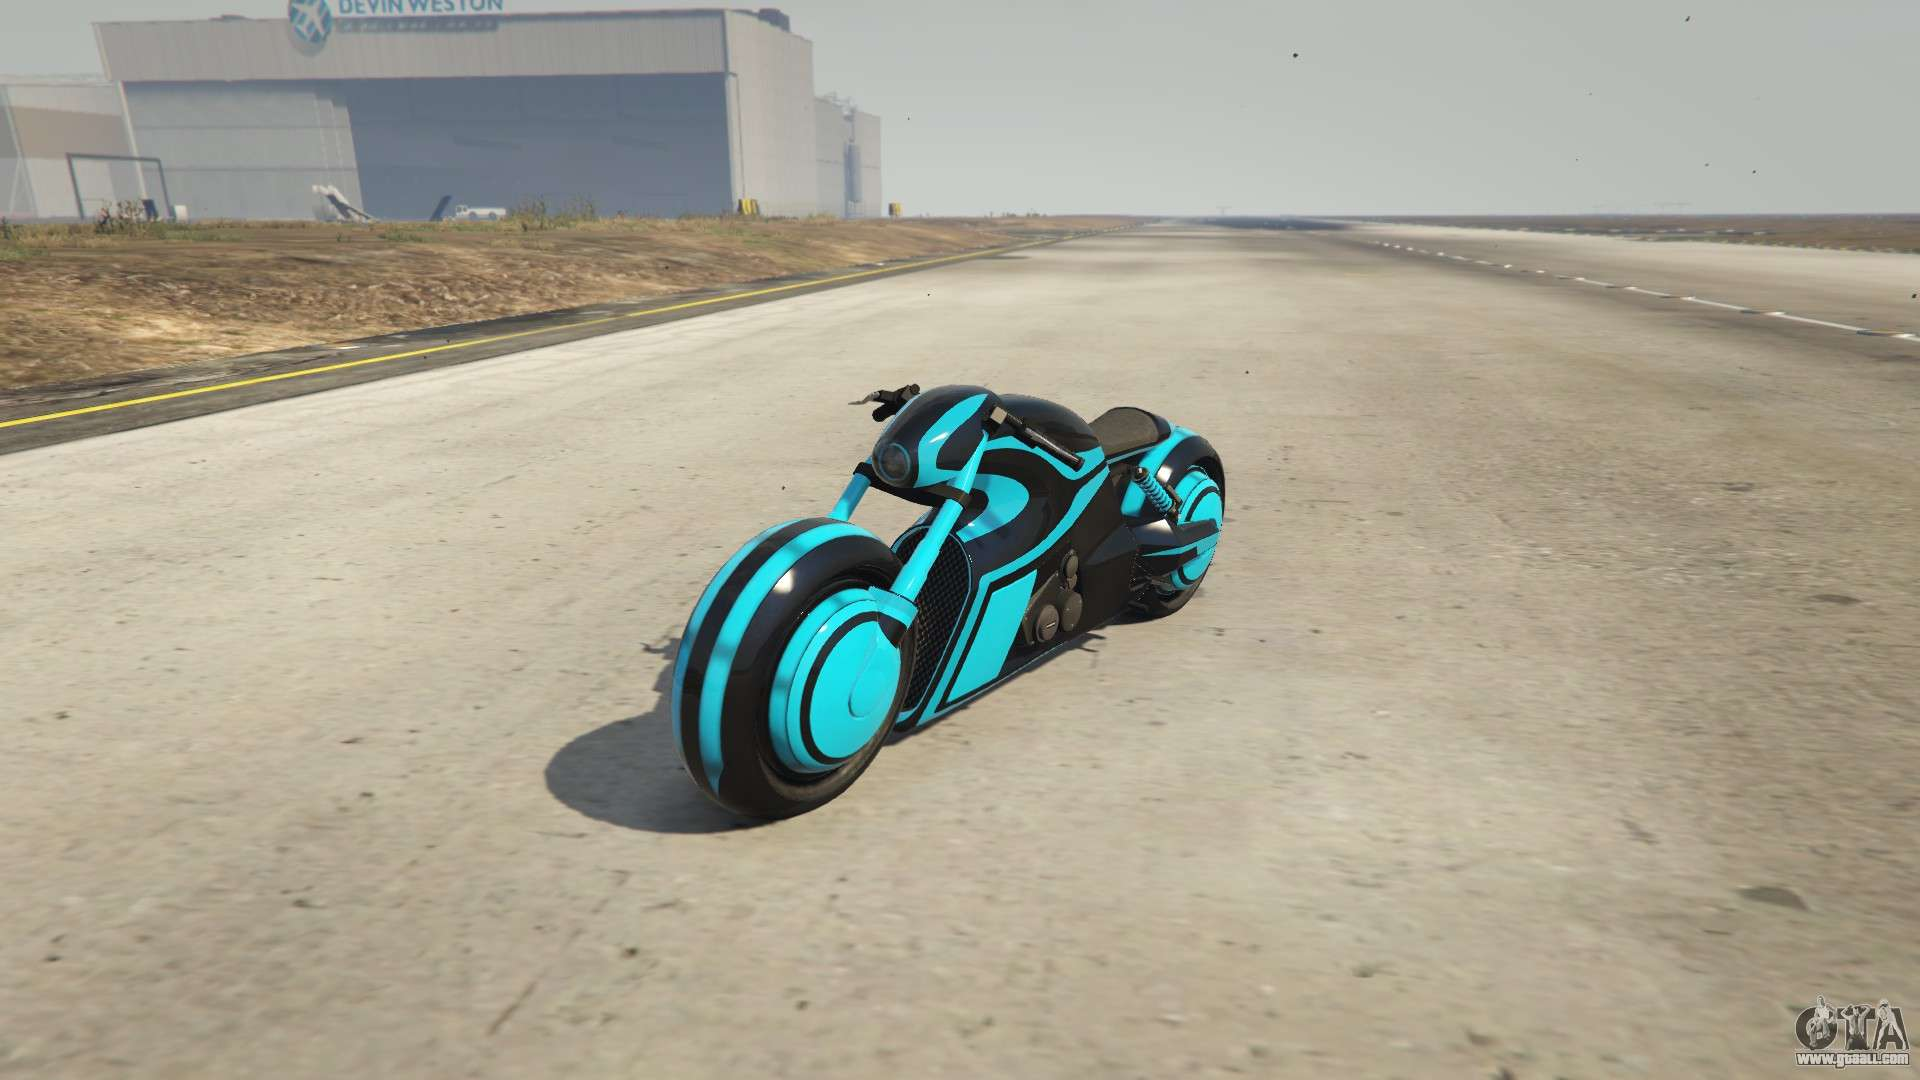 Nagasaki Shotaro from GTA online - front view